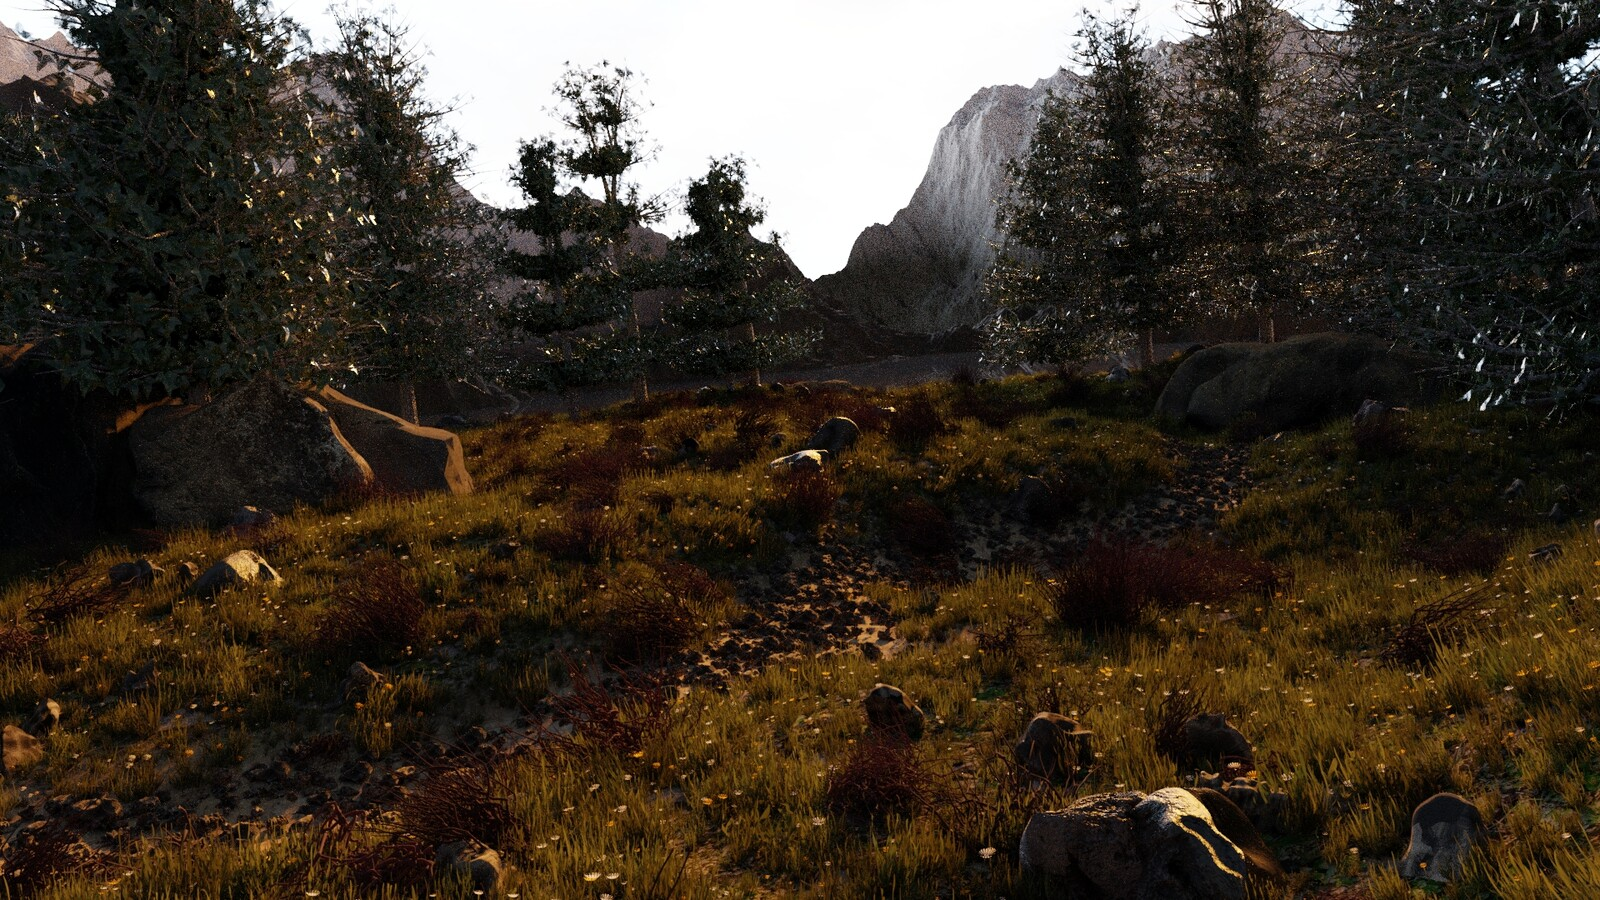 I added some variation to the trees, and added large rocks/boulders